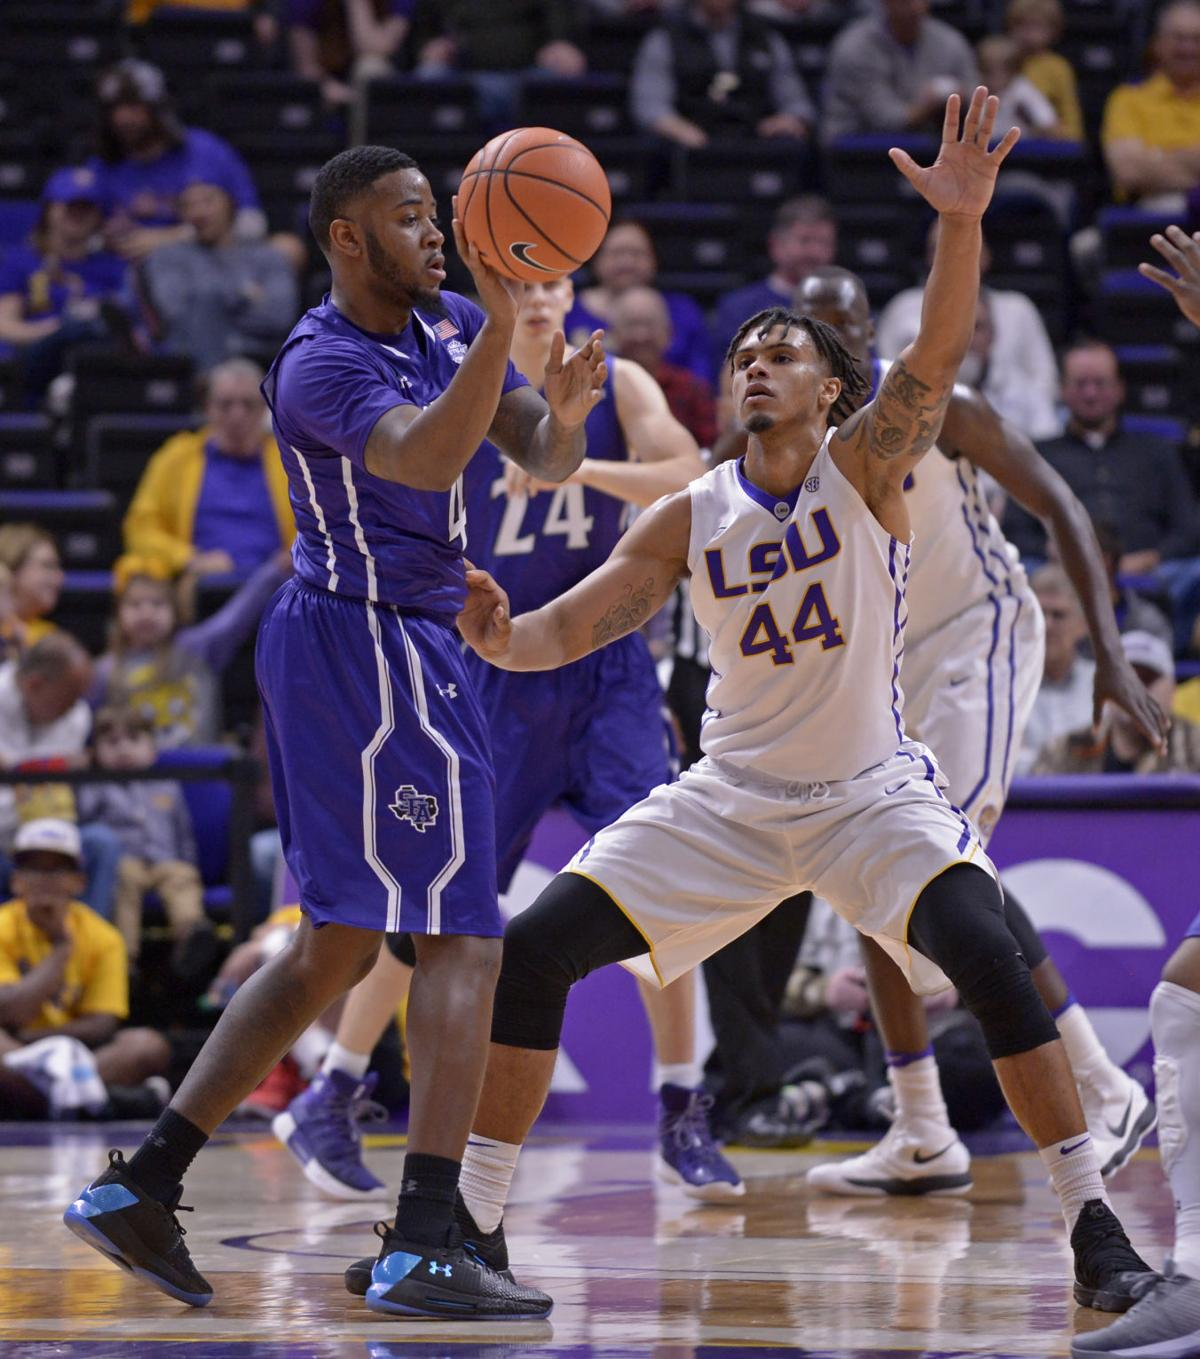 lsu basketball